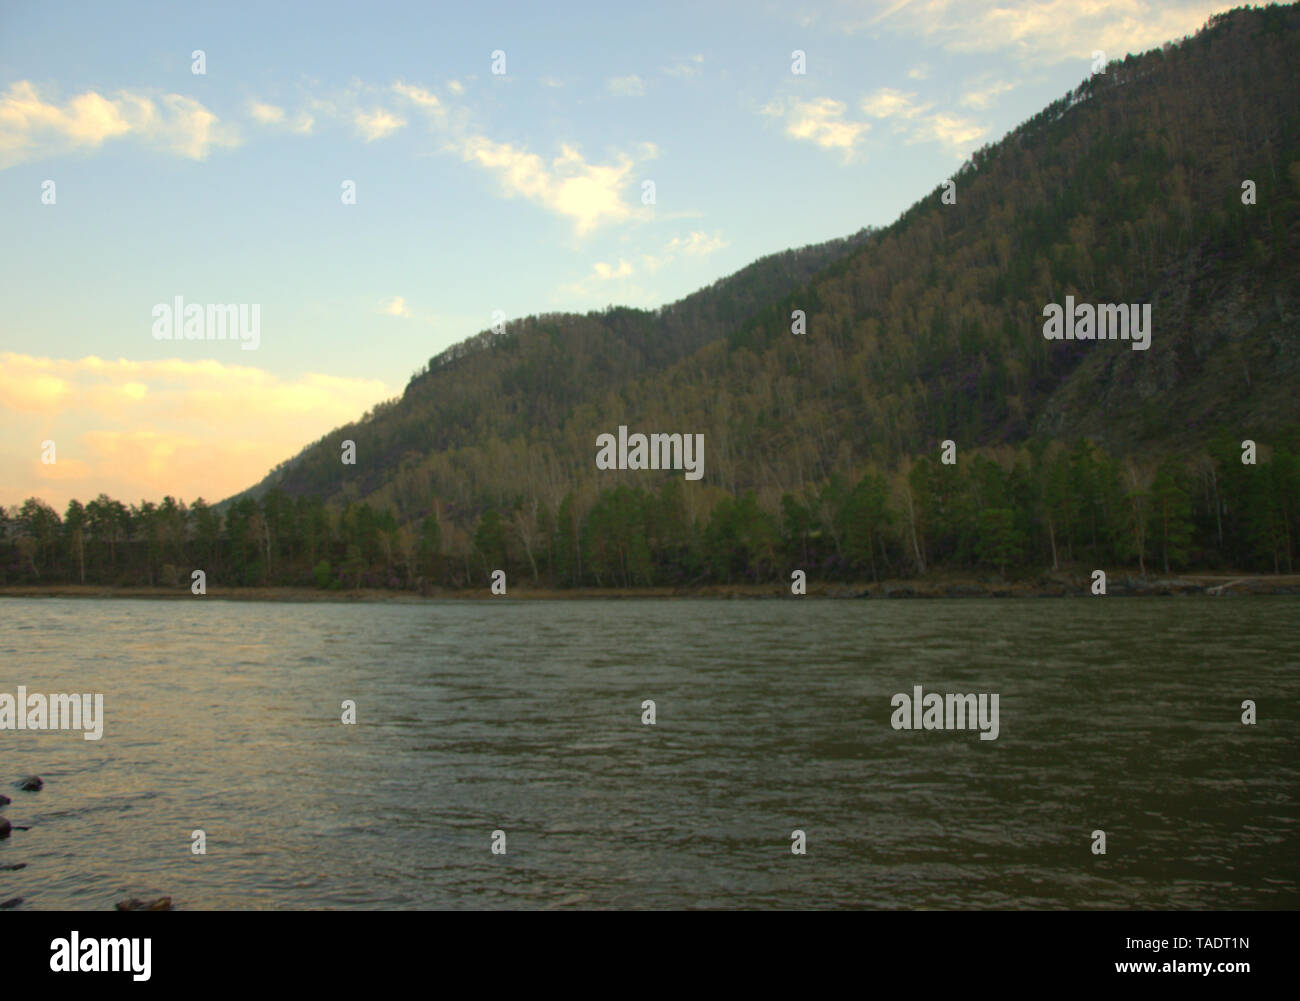 Katun, mountain river carrying its turquoise waters, shot at sunset. Altai, Siberia, Russia - Stock Image